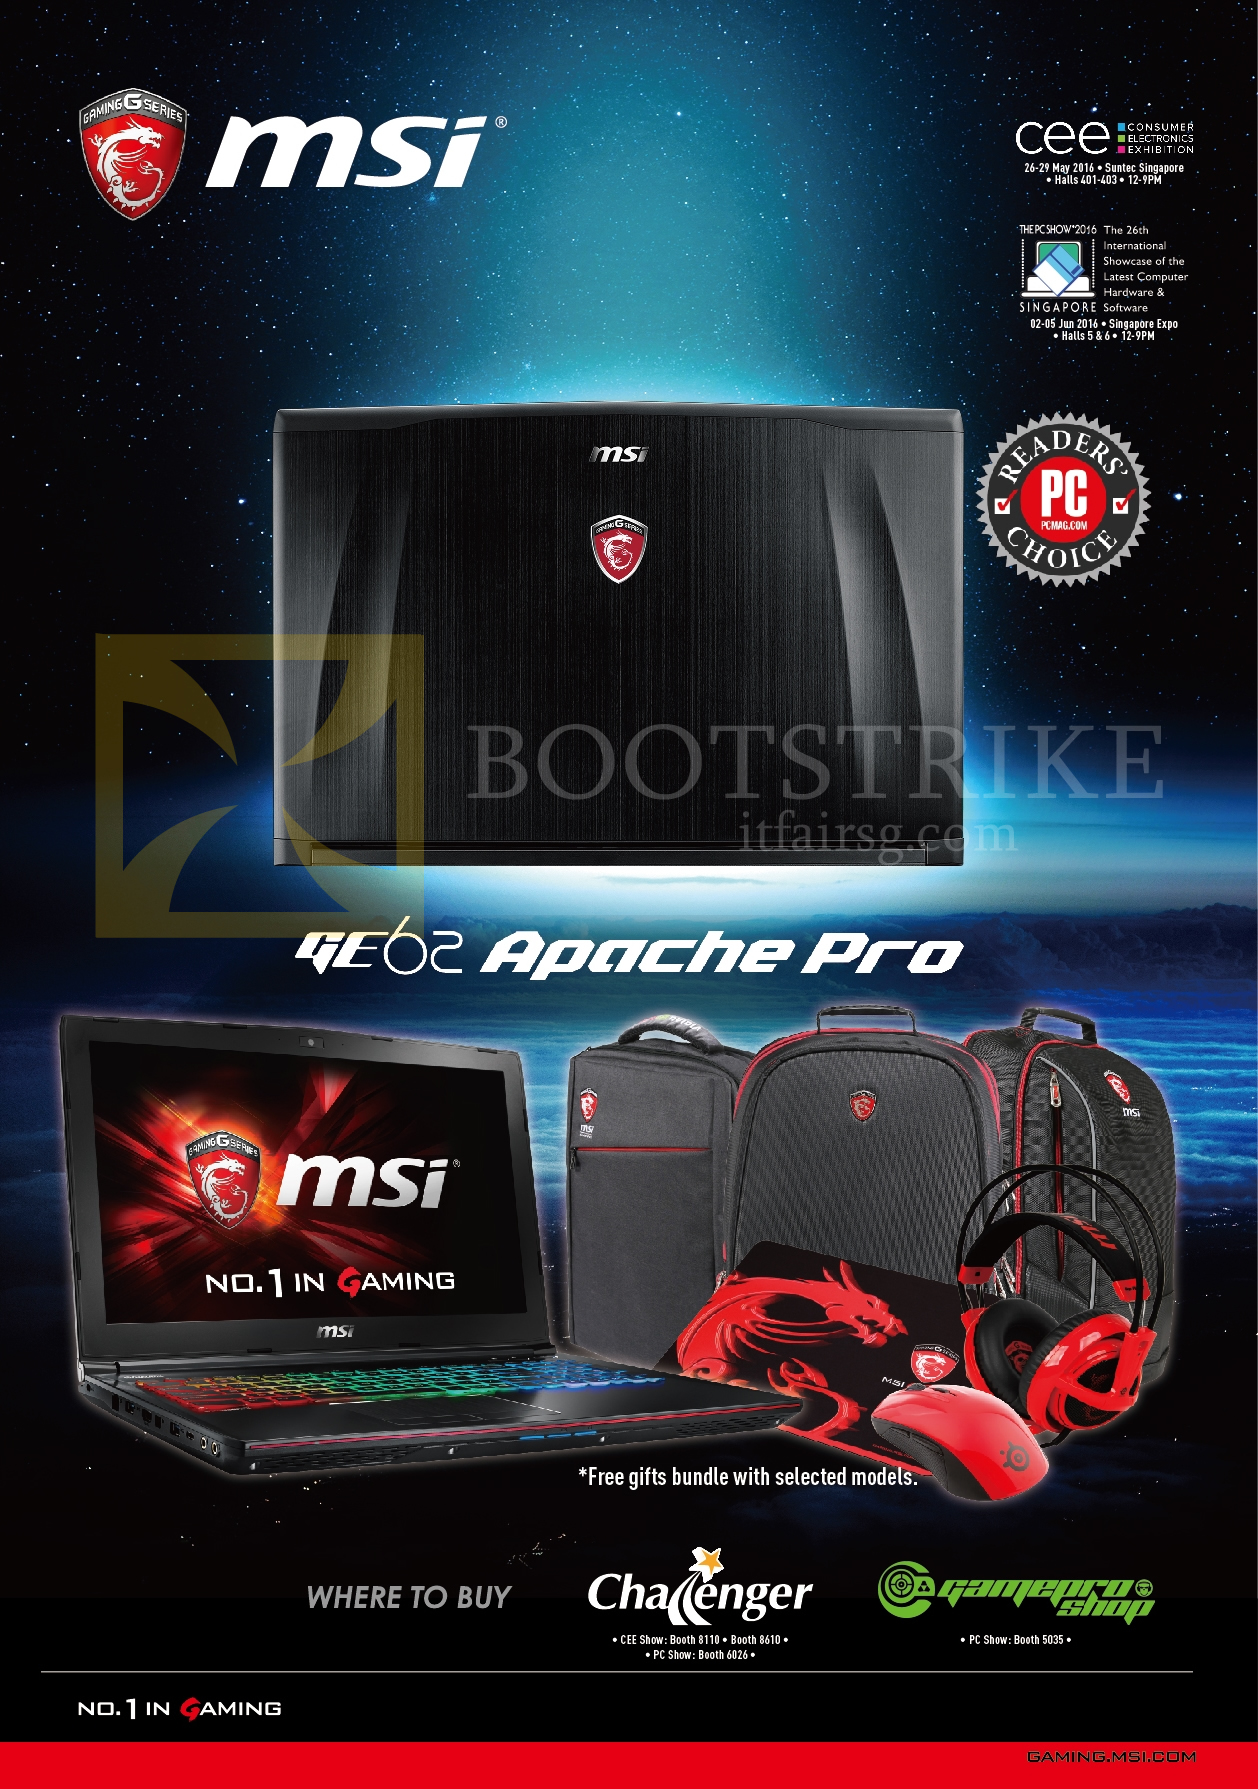 PC SHOW 2016 price list image brochure of MSI Notebooks GE62 Apache Pro, Booth Locations, Challenger, Gamepro